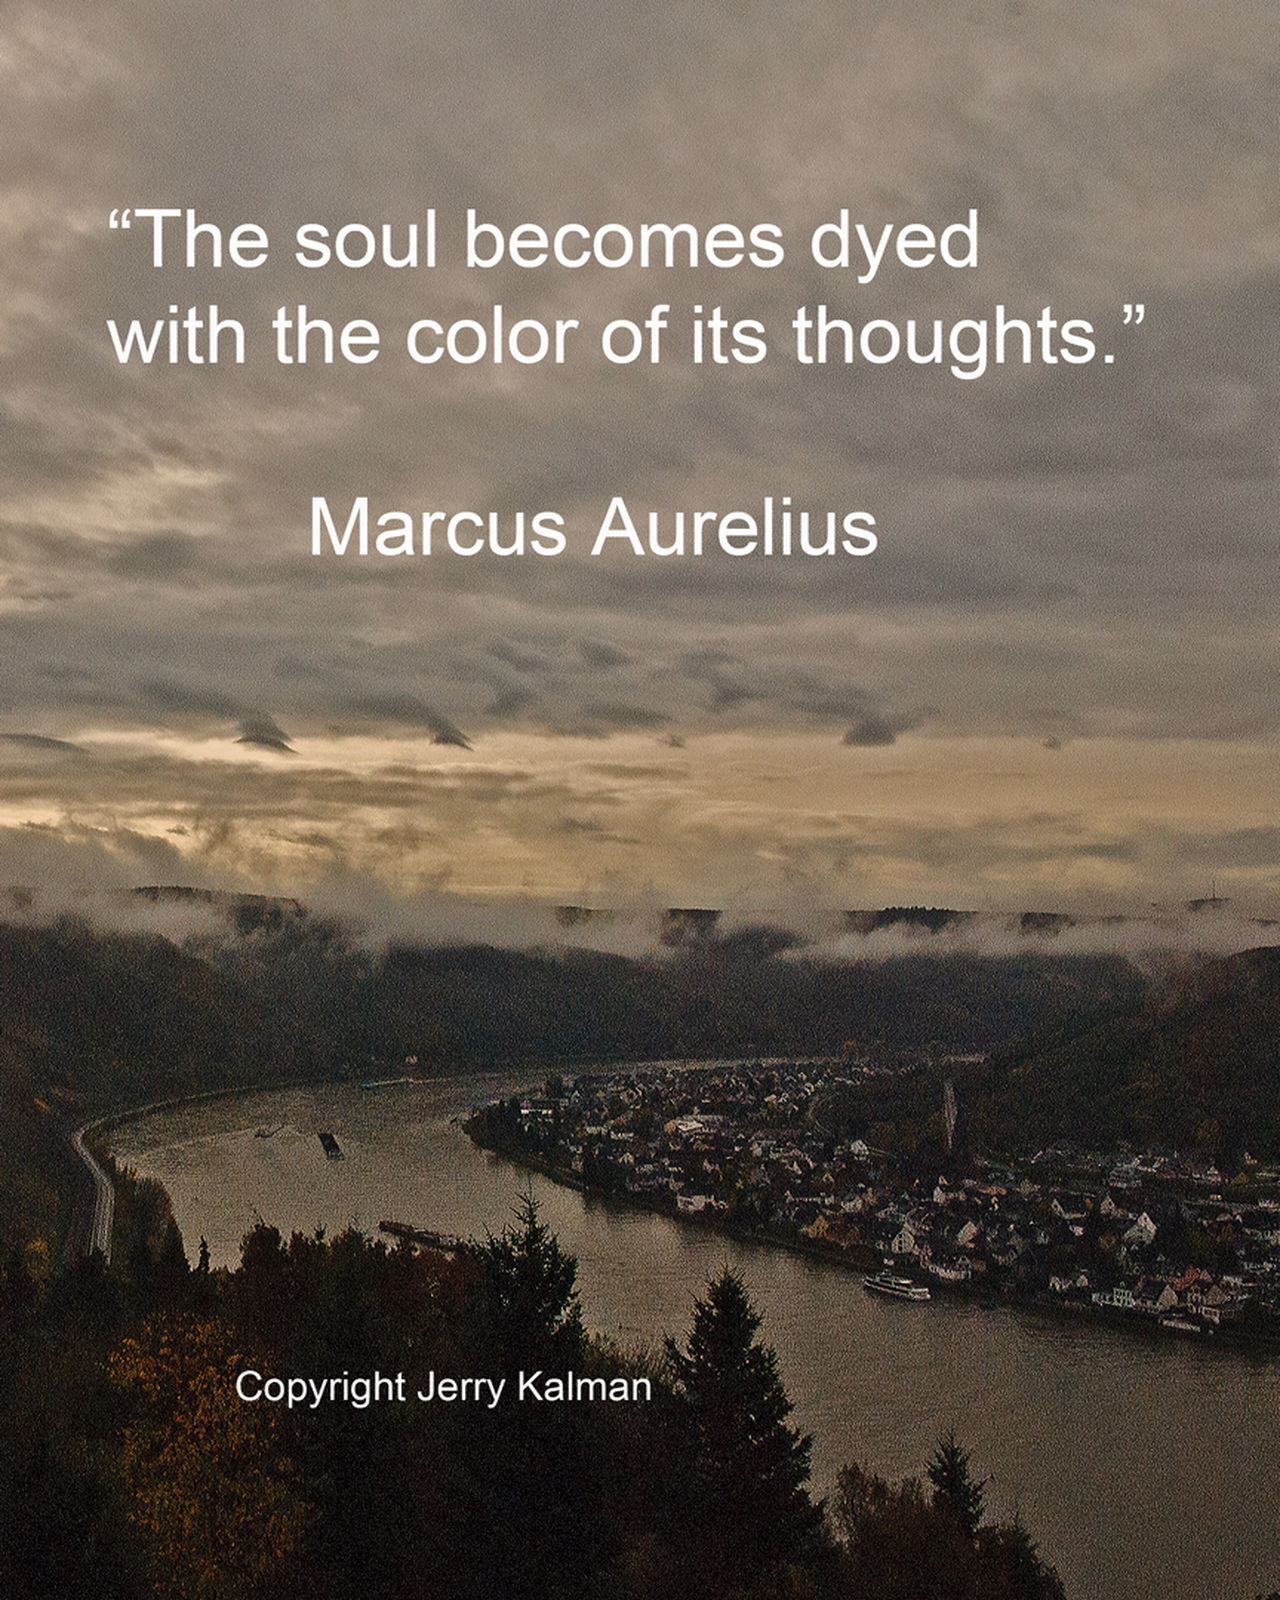 #Quotograph view of #RhineRiver near Braubach, Germany and quote by #MarcusAurelius Bruabach, Germany Check This Out Dusk Marcus Aurelius Marksburg Castle Quote Quotograph Rhine River